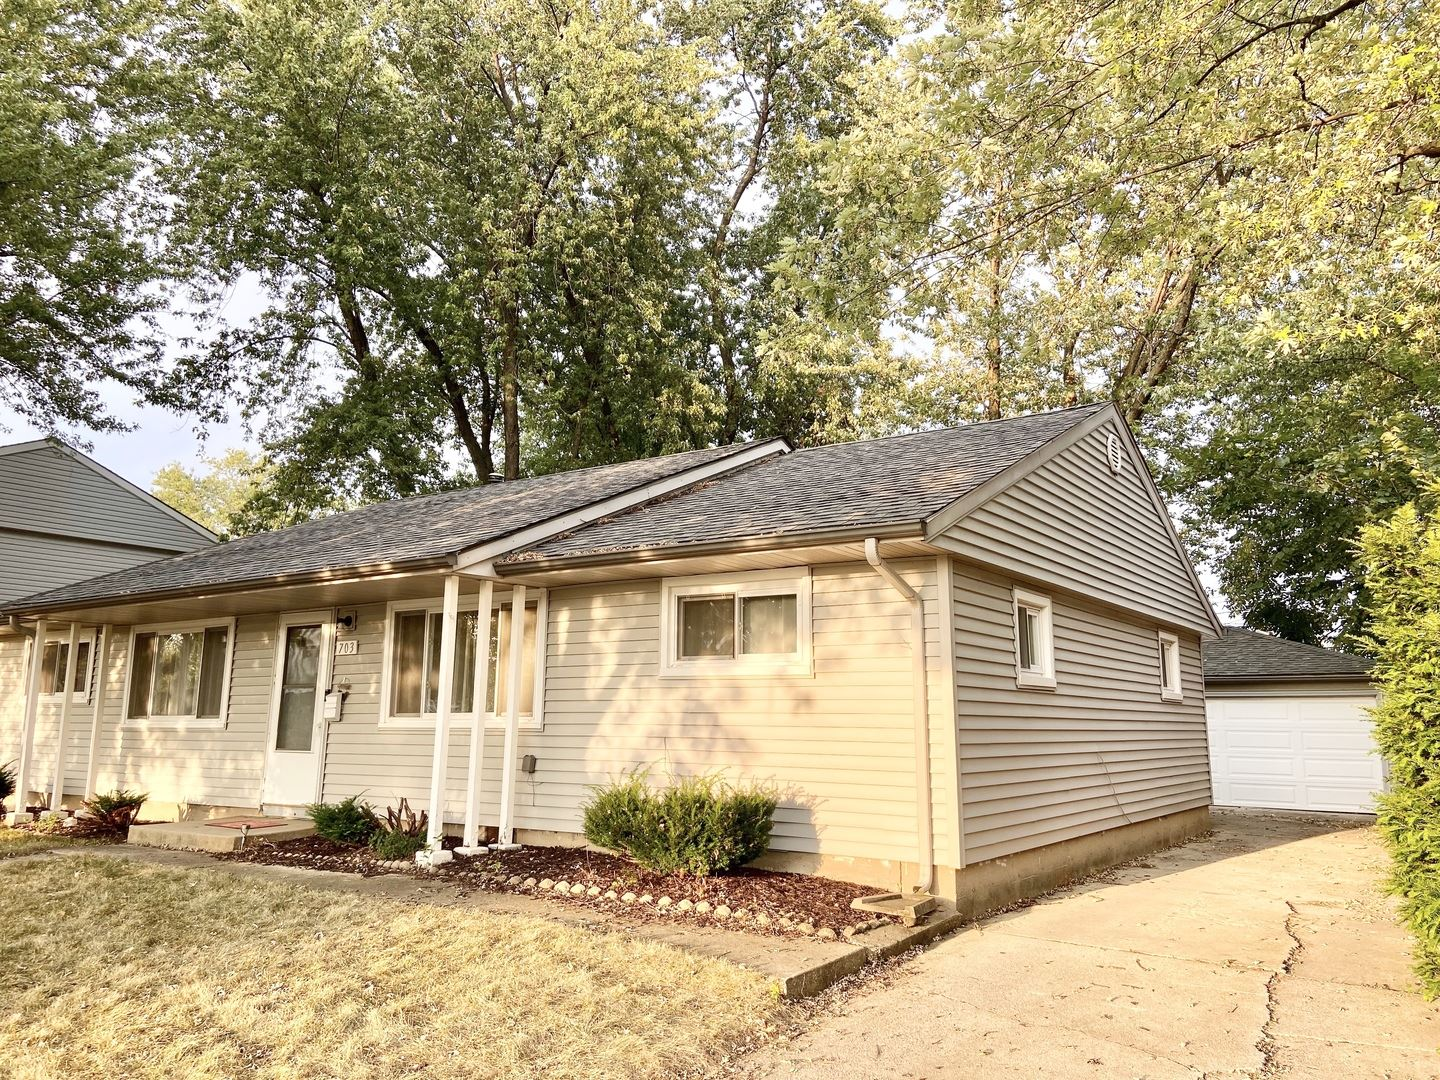 Photo of 703 Rogers Road, Romeoville, IL 60446 (MLS # 10842258)